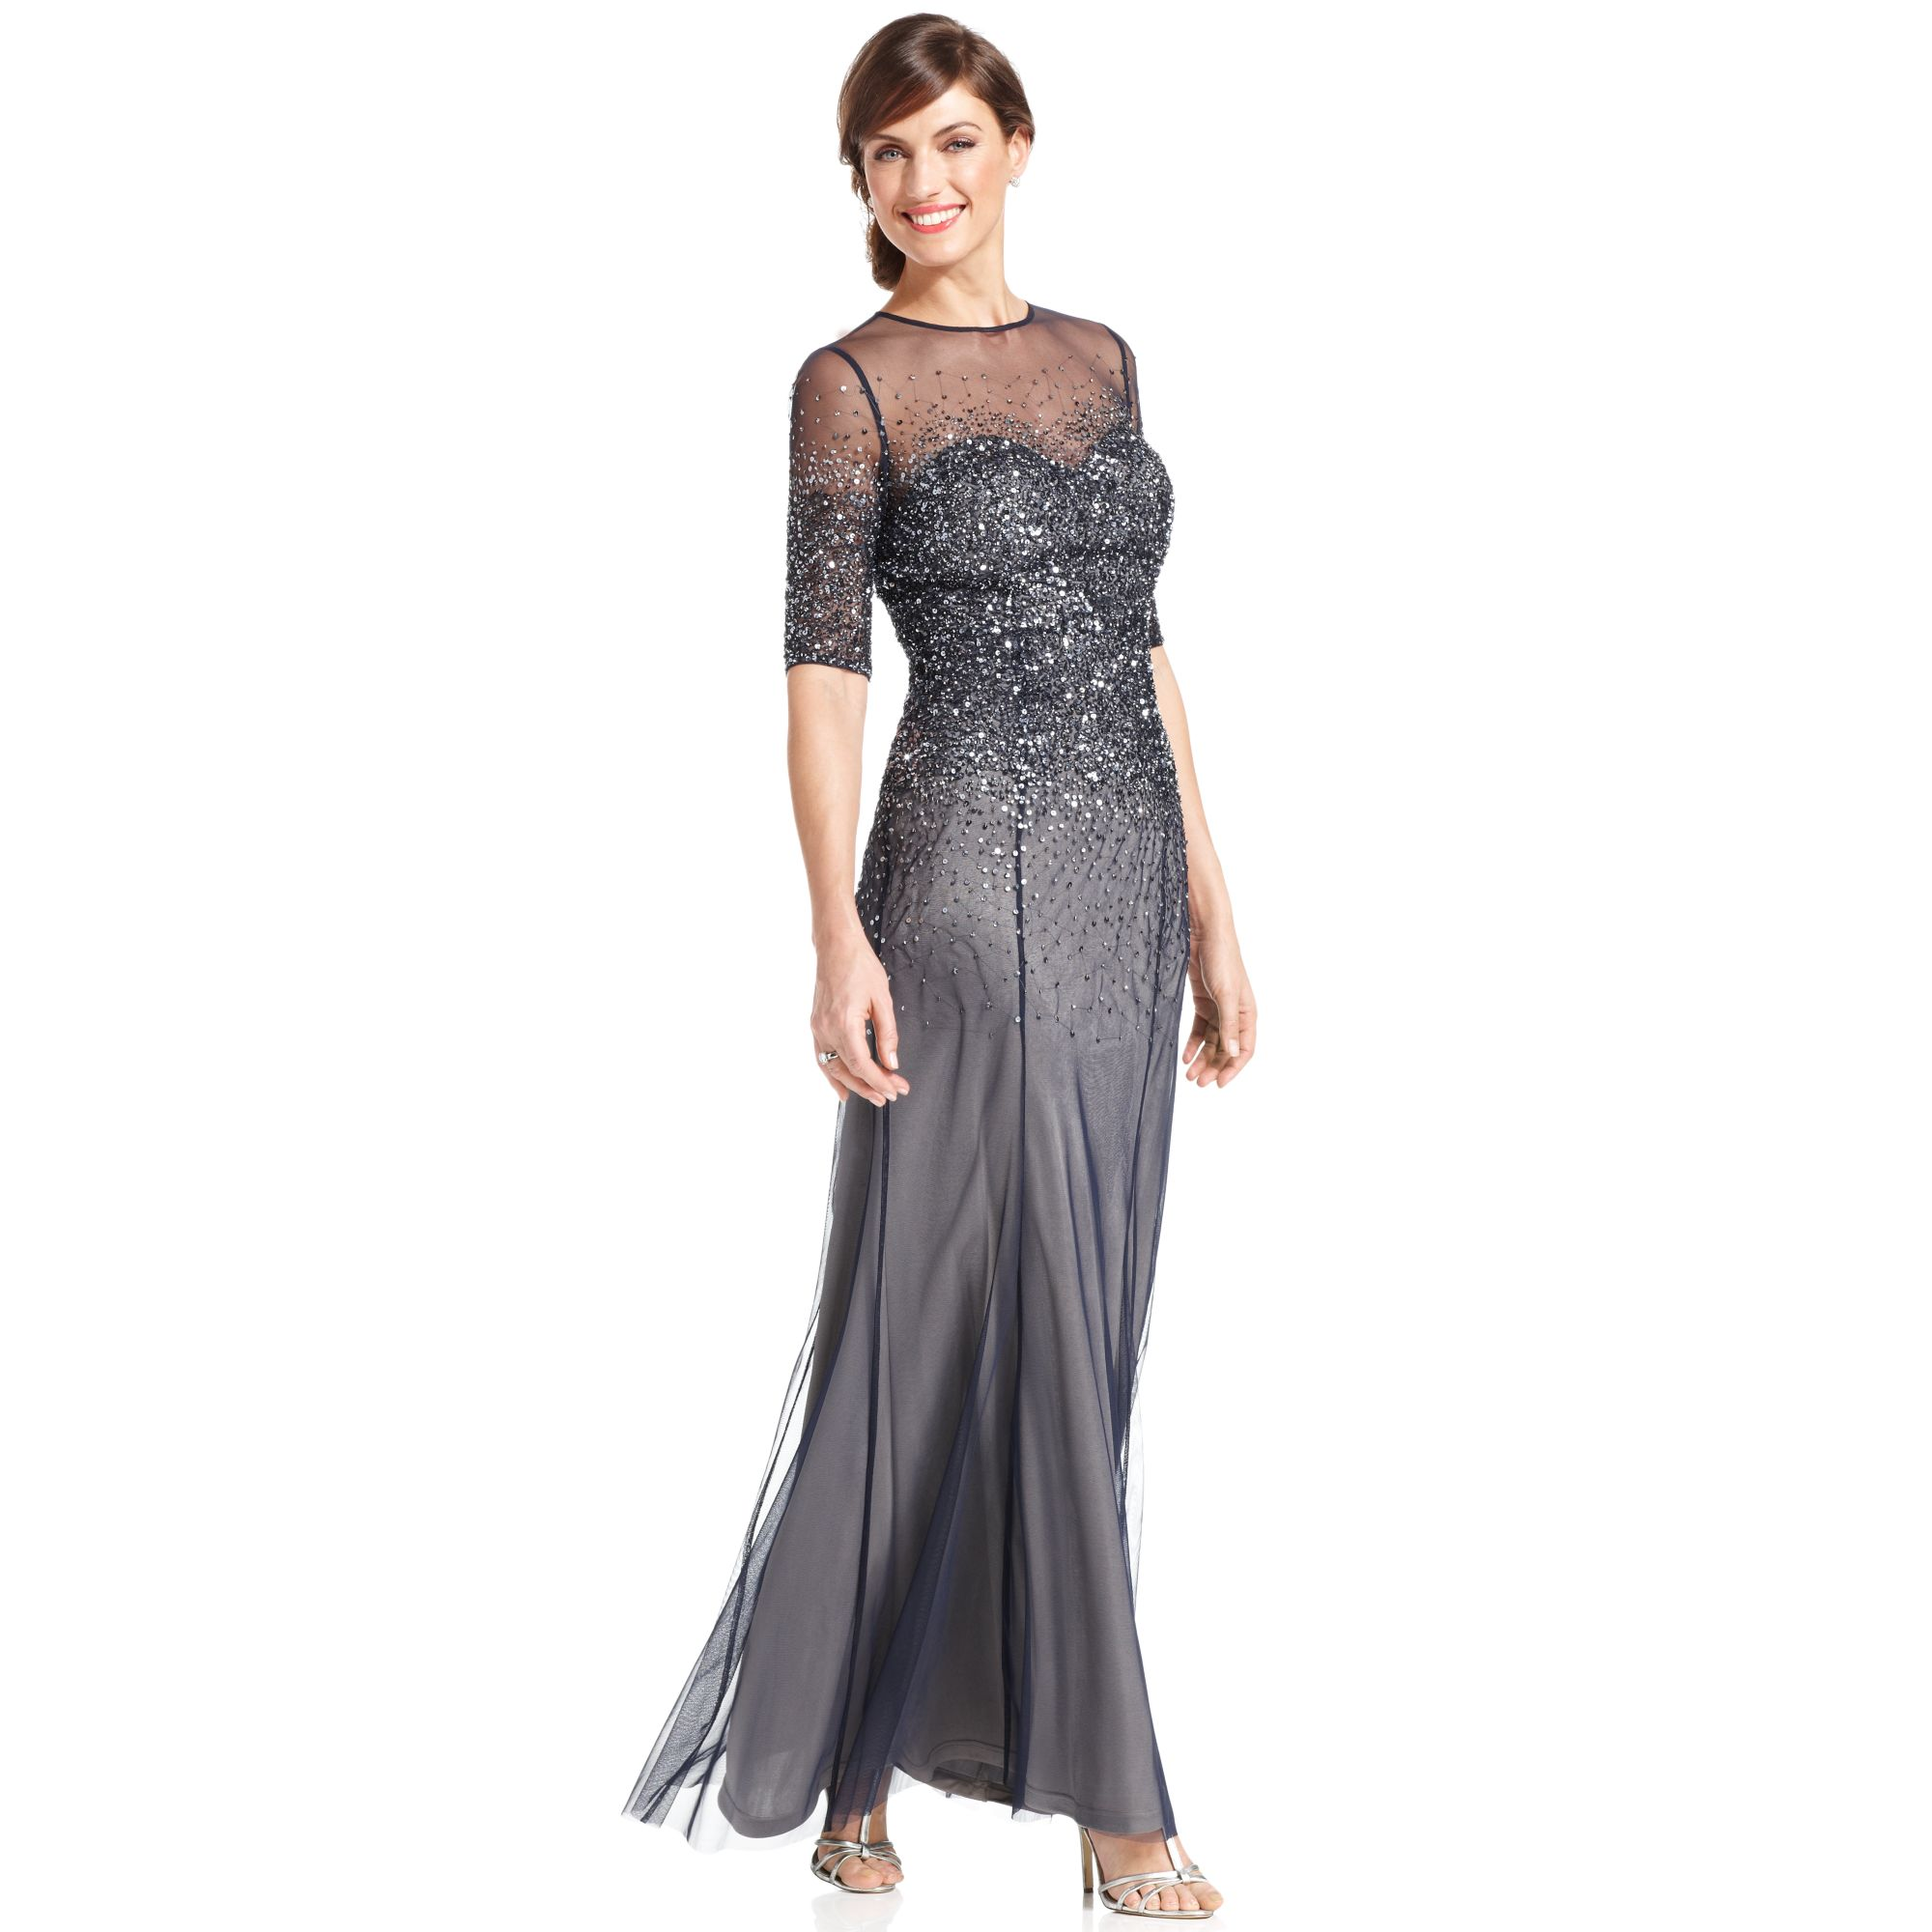 Lyst - Adrianna Papell Elbow-Sleeve Sequined Beaded Gown in Blue